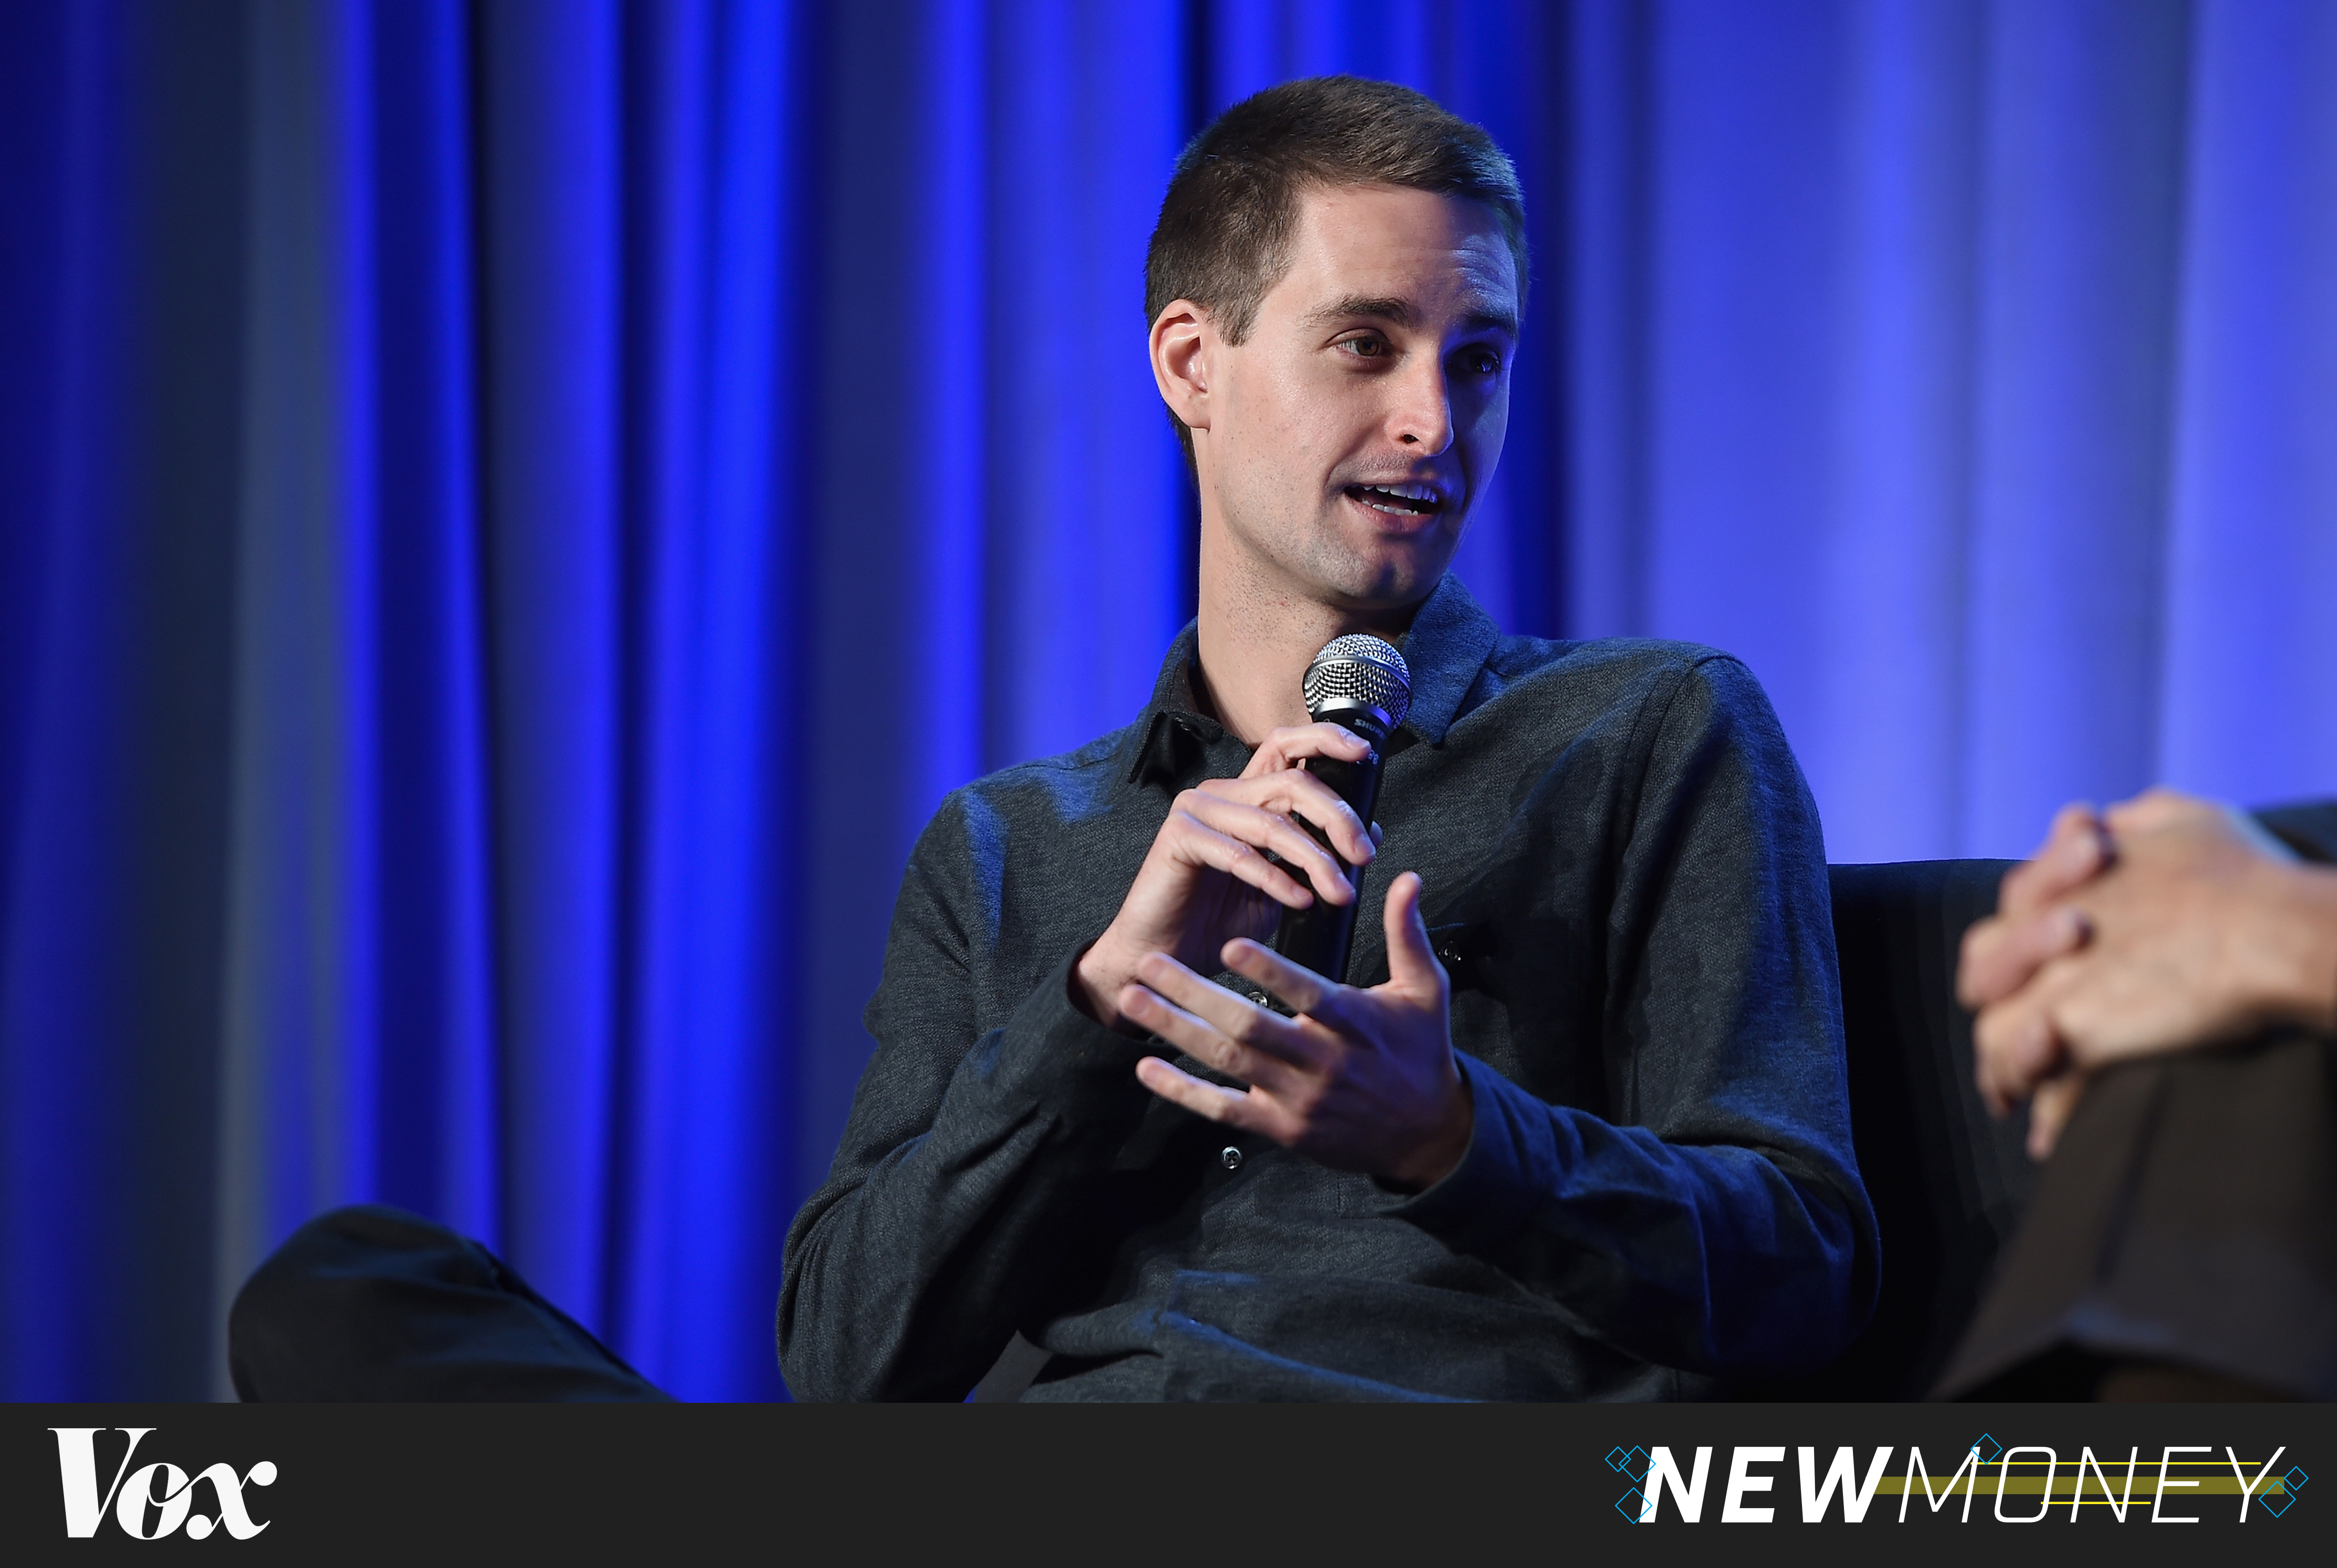 Snapchat's $25 billion initial public offering, explained for people over 30